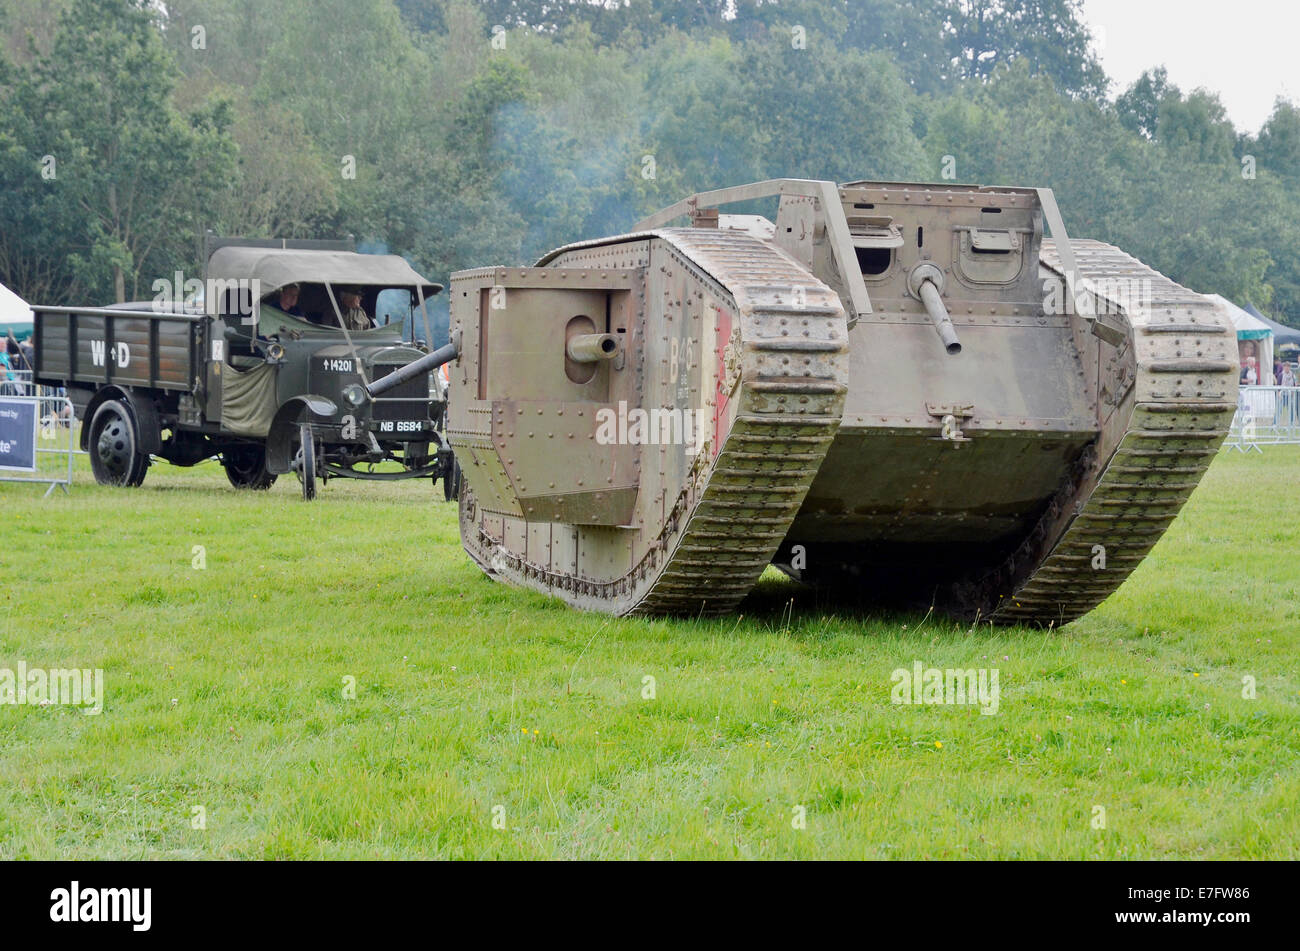 Replica British Mk IV tank of WW1 built for the Speilberg film 'Warhorse' and now based at The Tank Museum, - Stock Image